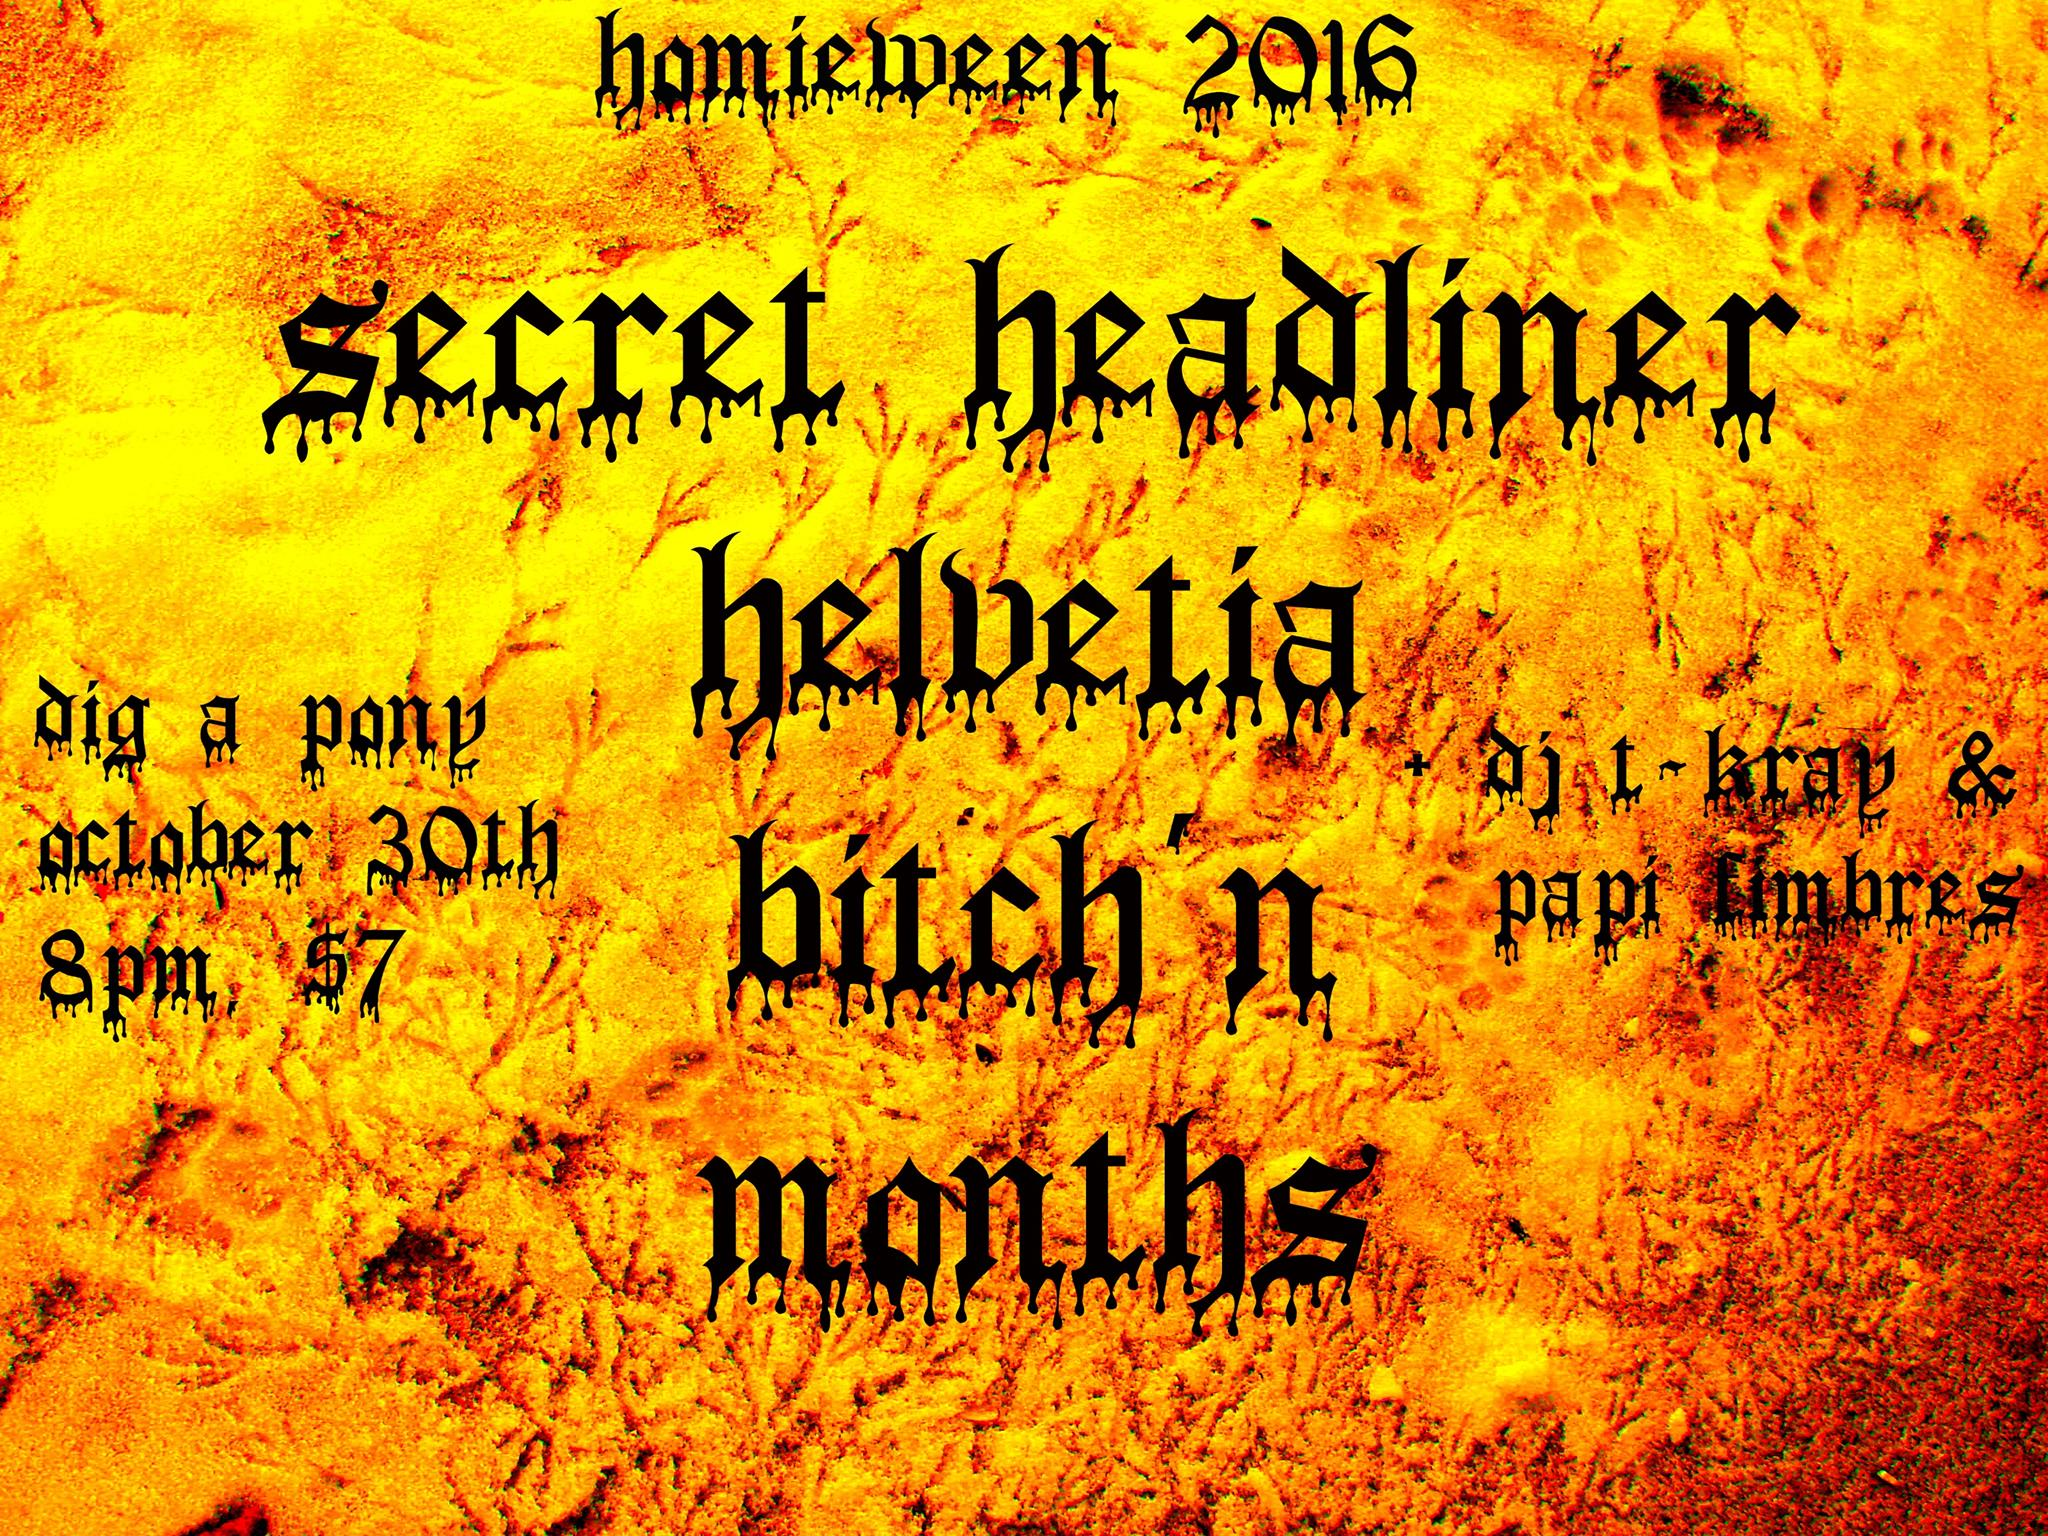 months plays homieween 2016 at dig a pony with a secret headliner, helvetia, bitch'n, sunday 10/30